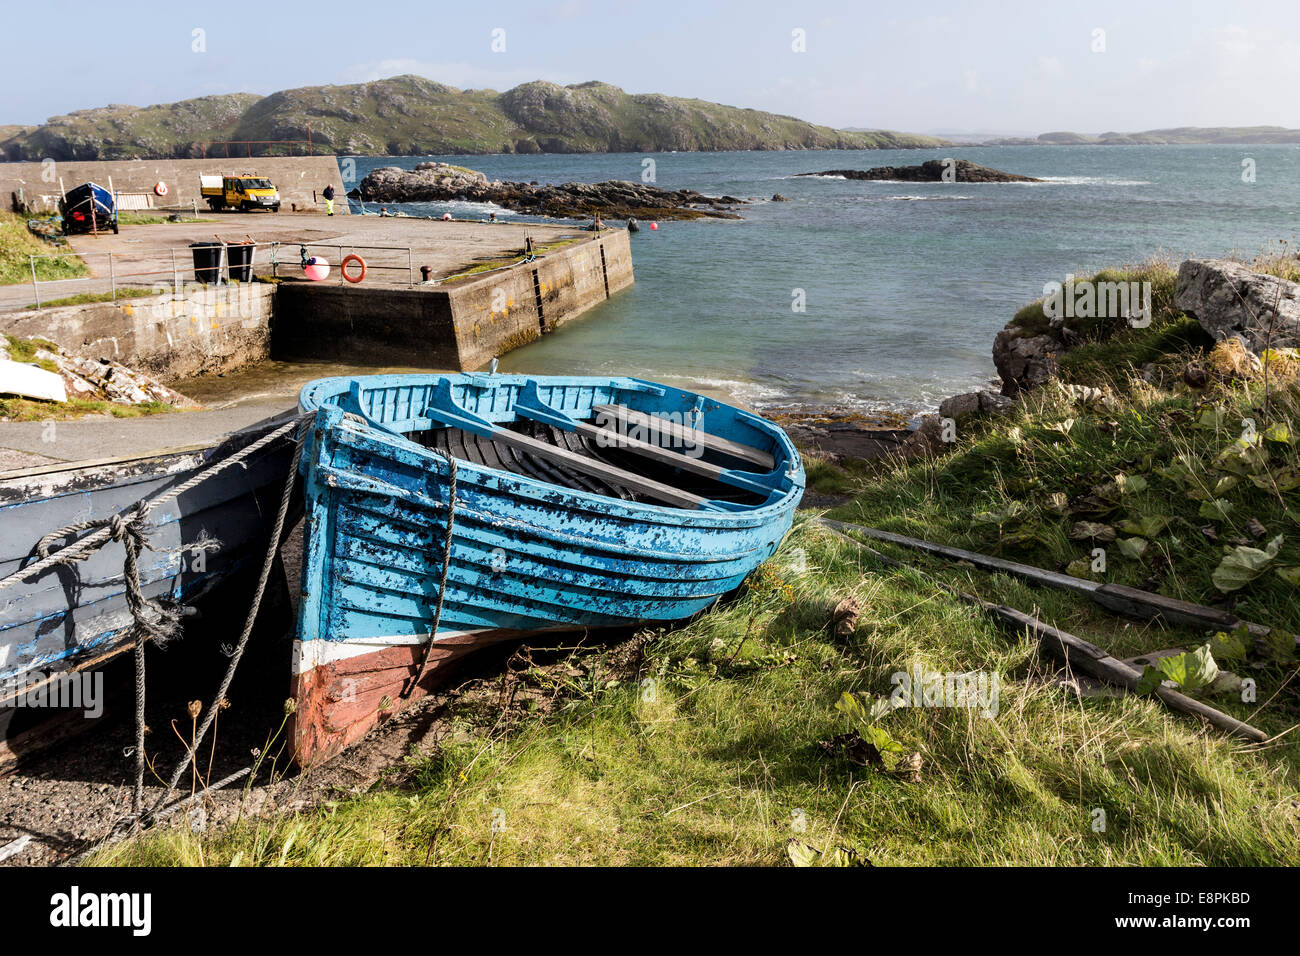 Fishing Boats and Pier at the Village of Bhaltos (Valtos) Isle of Lewis Hebrides Scotland UK - Stock Image